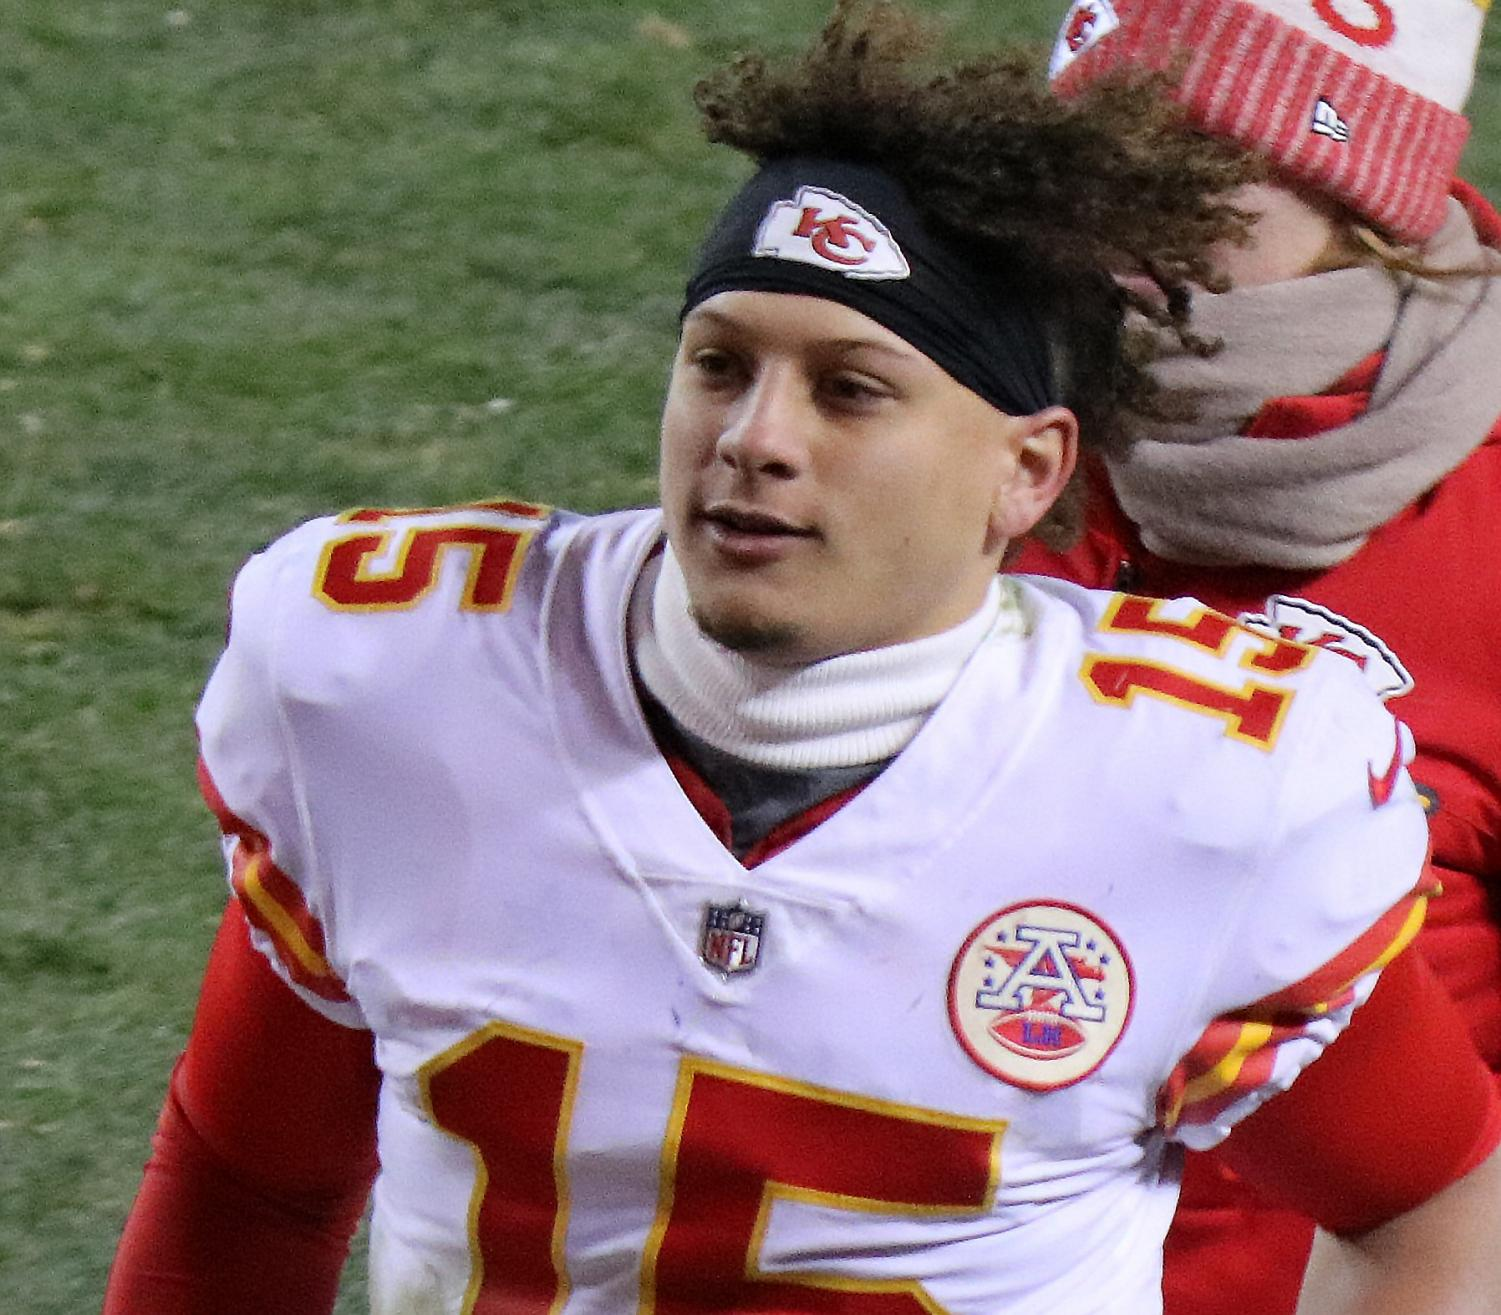 Starting AFC Pro Bowl quarterback Patrick Mahomes in 2017 (photo by Jeffrey Beall)